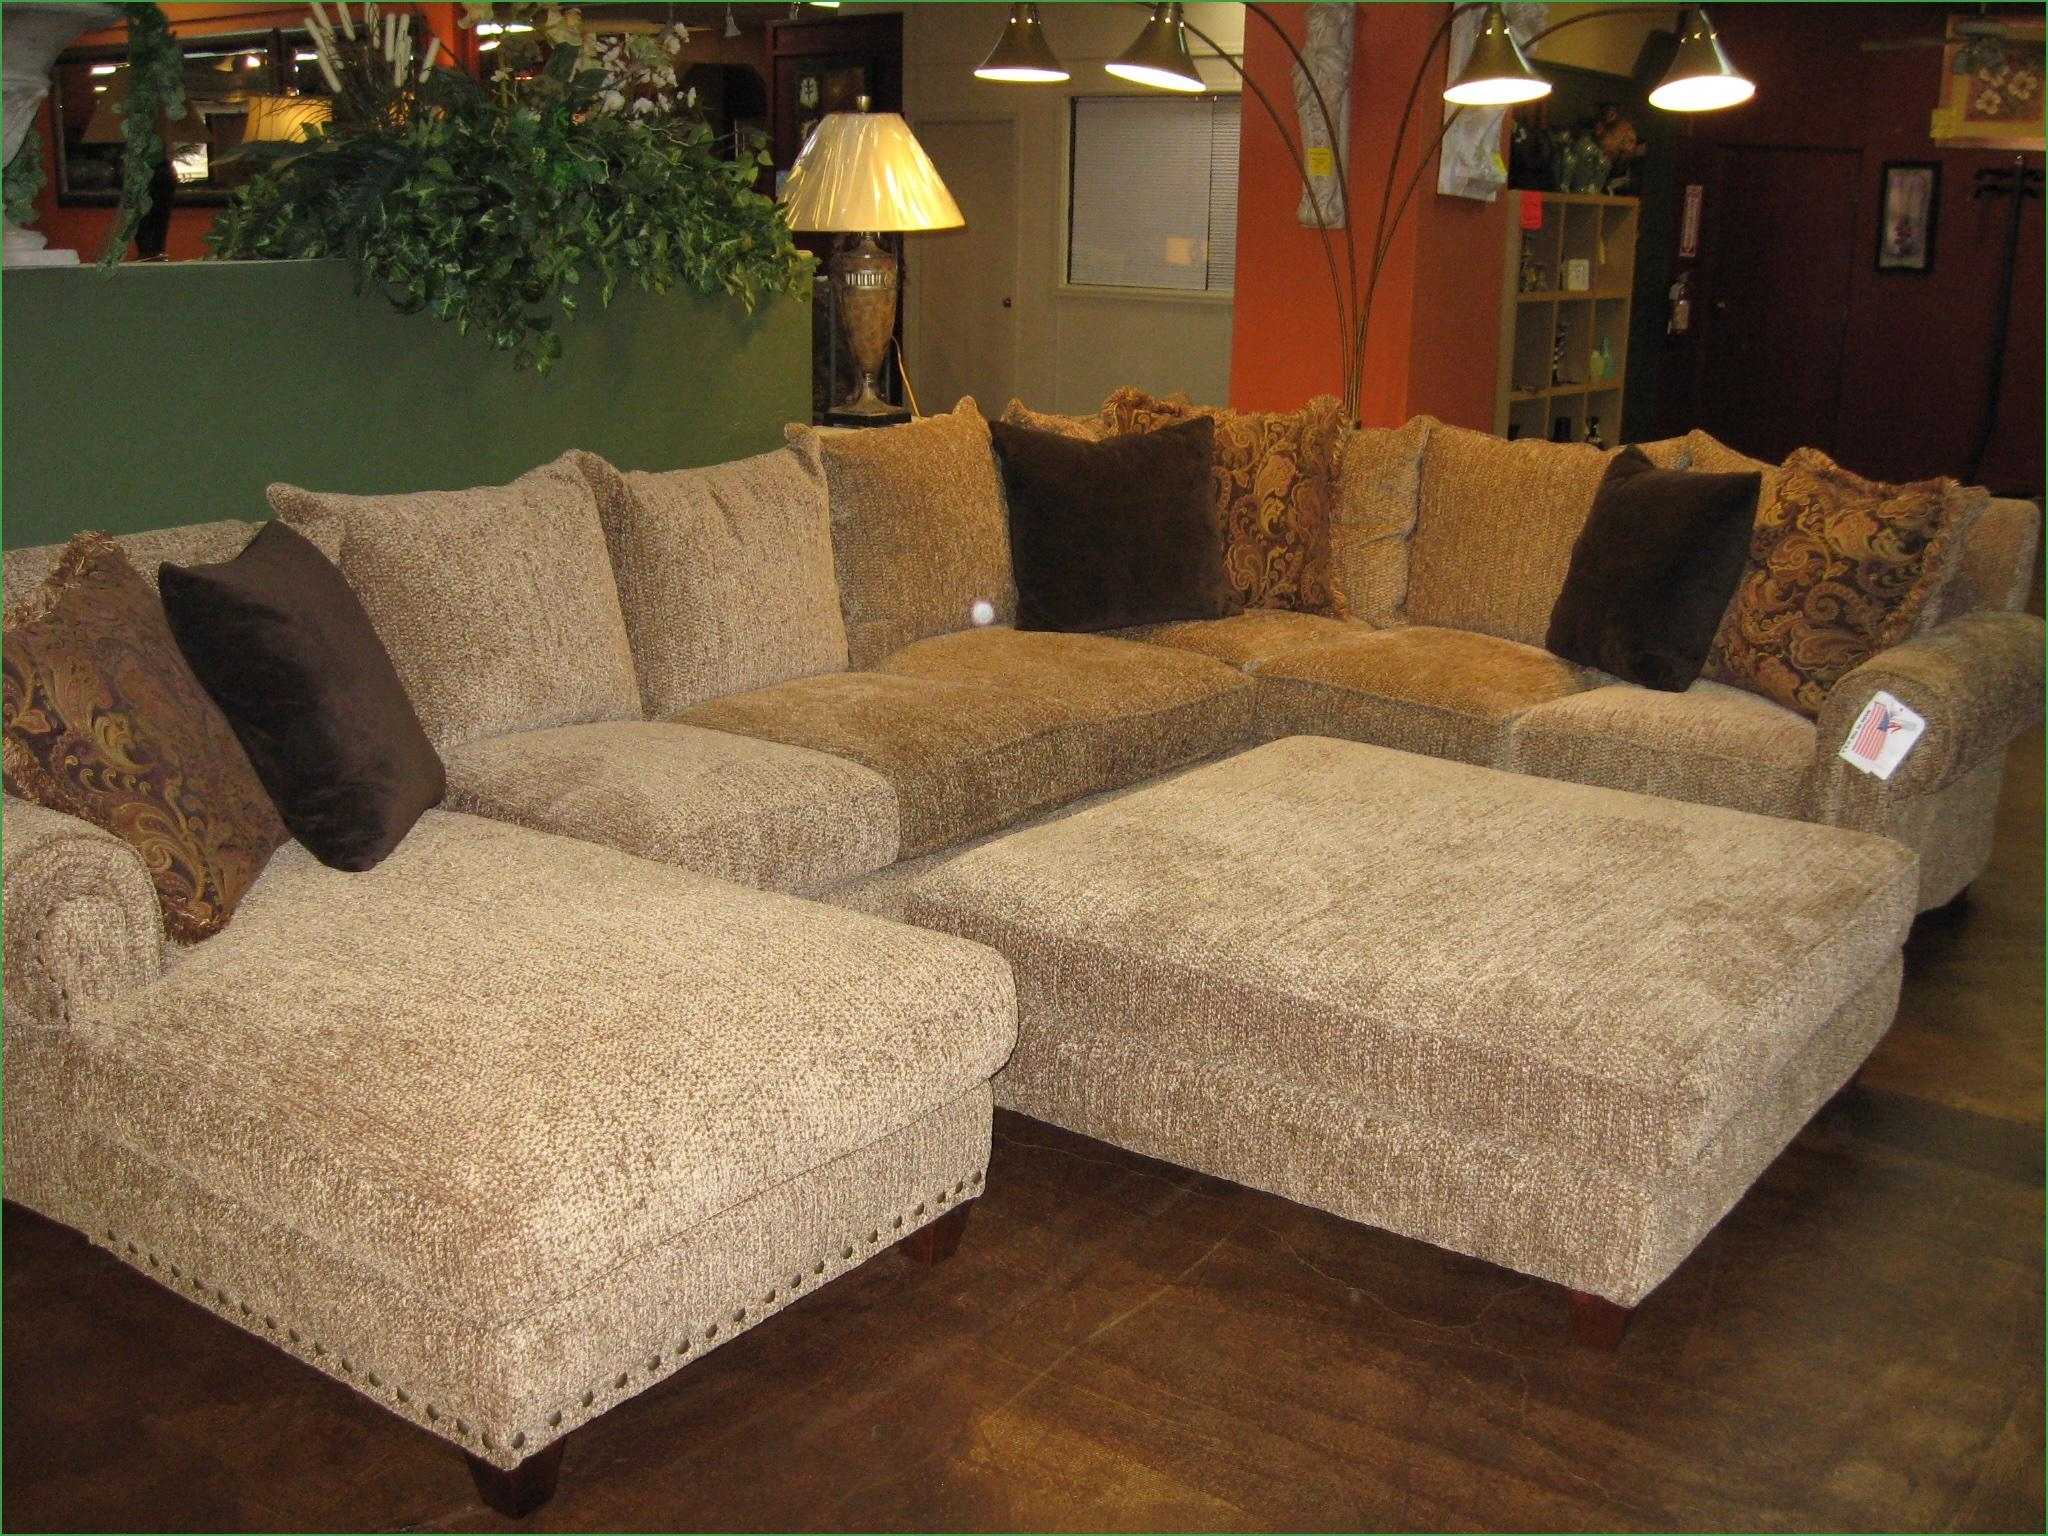 Sofas Center : Large Sectional Sofa With Ottoman Sensational Inside Sectional Sofa With Large Ottoman (Image 13 of 20)